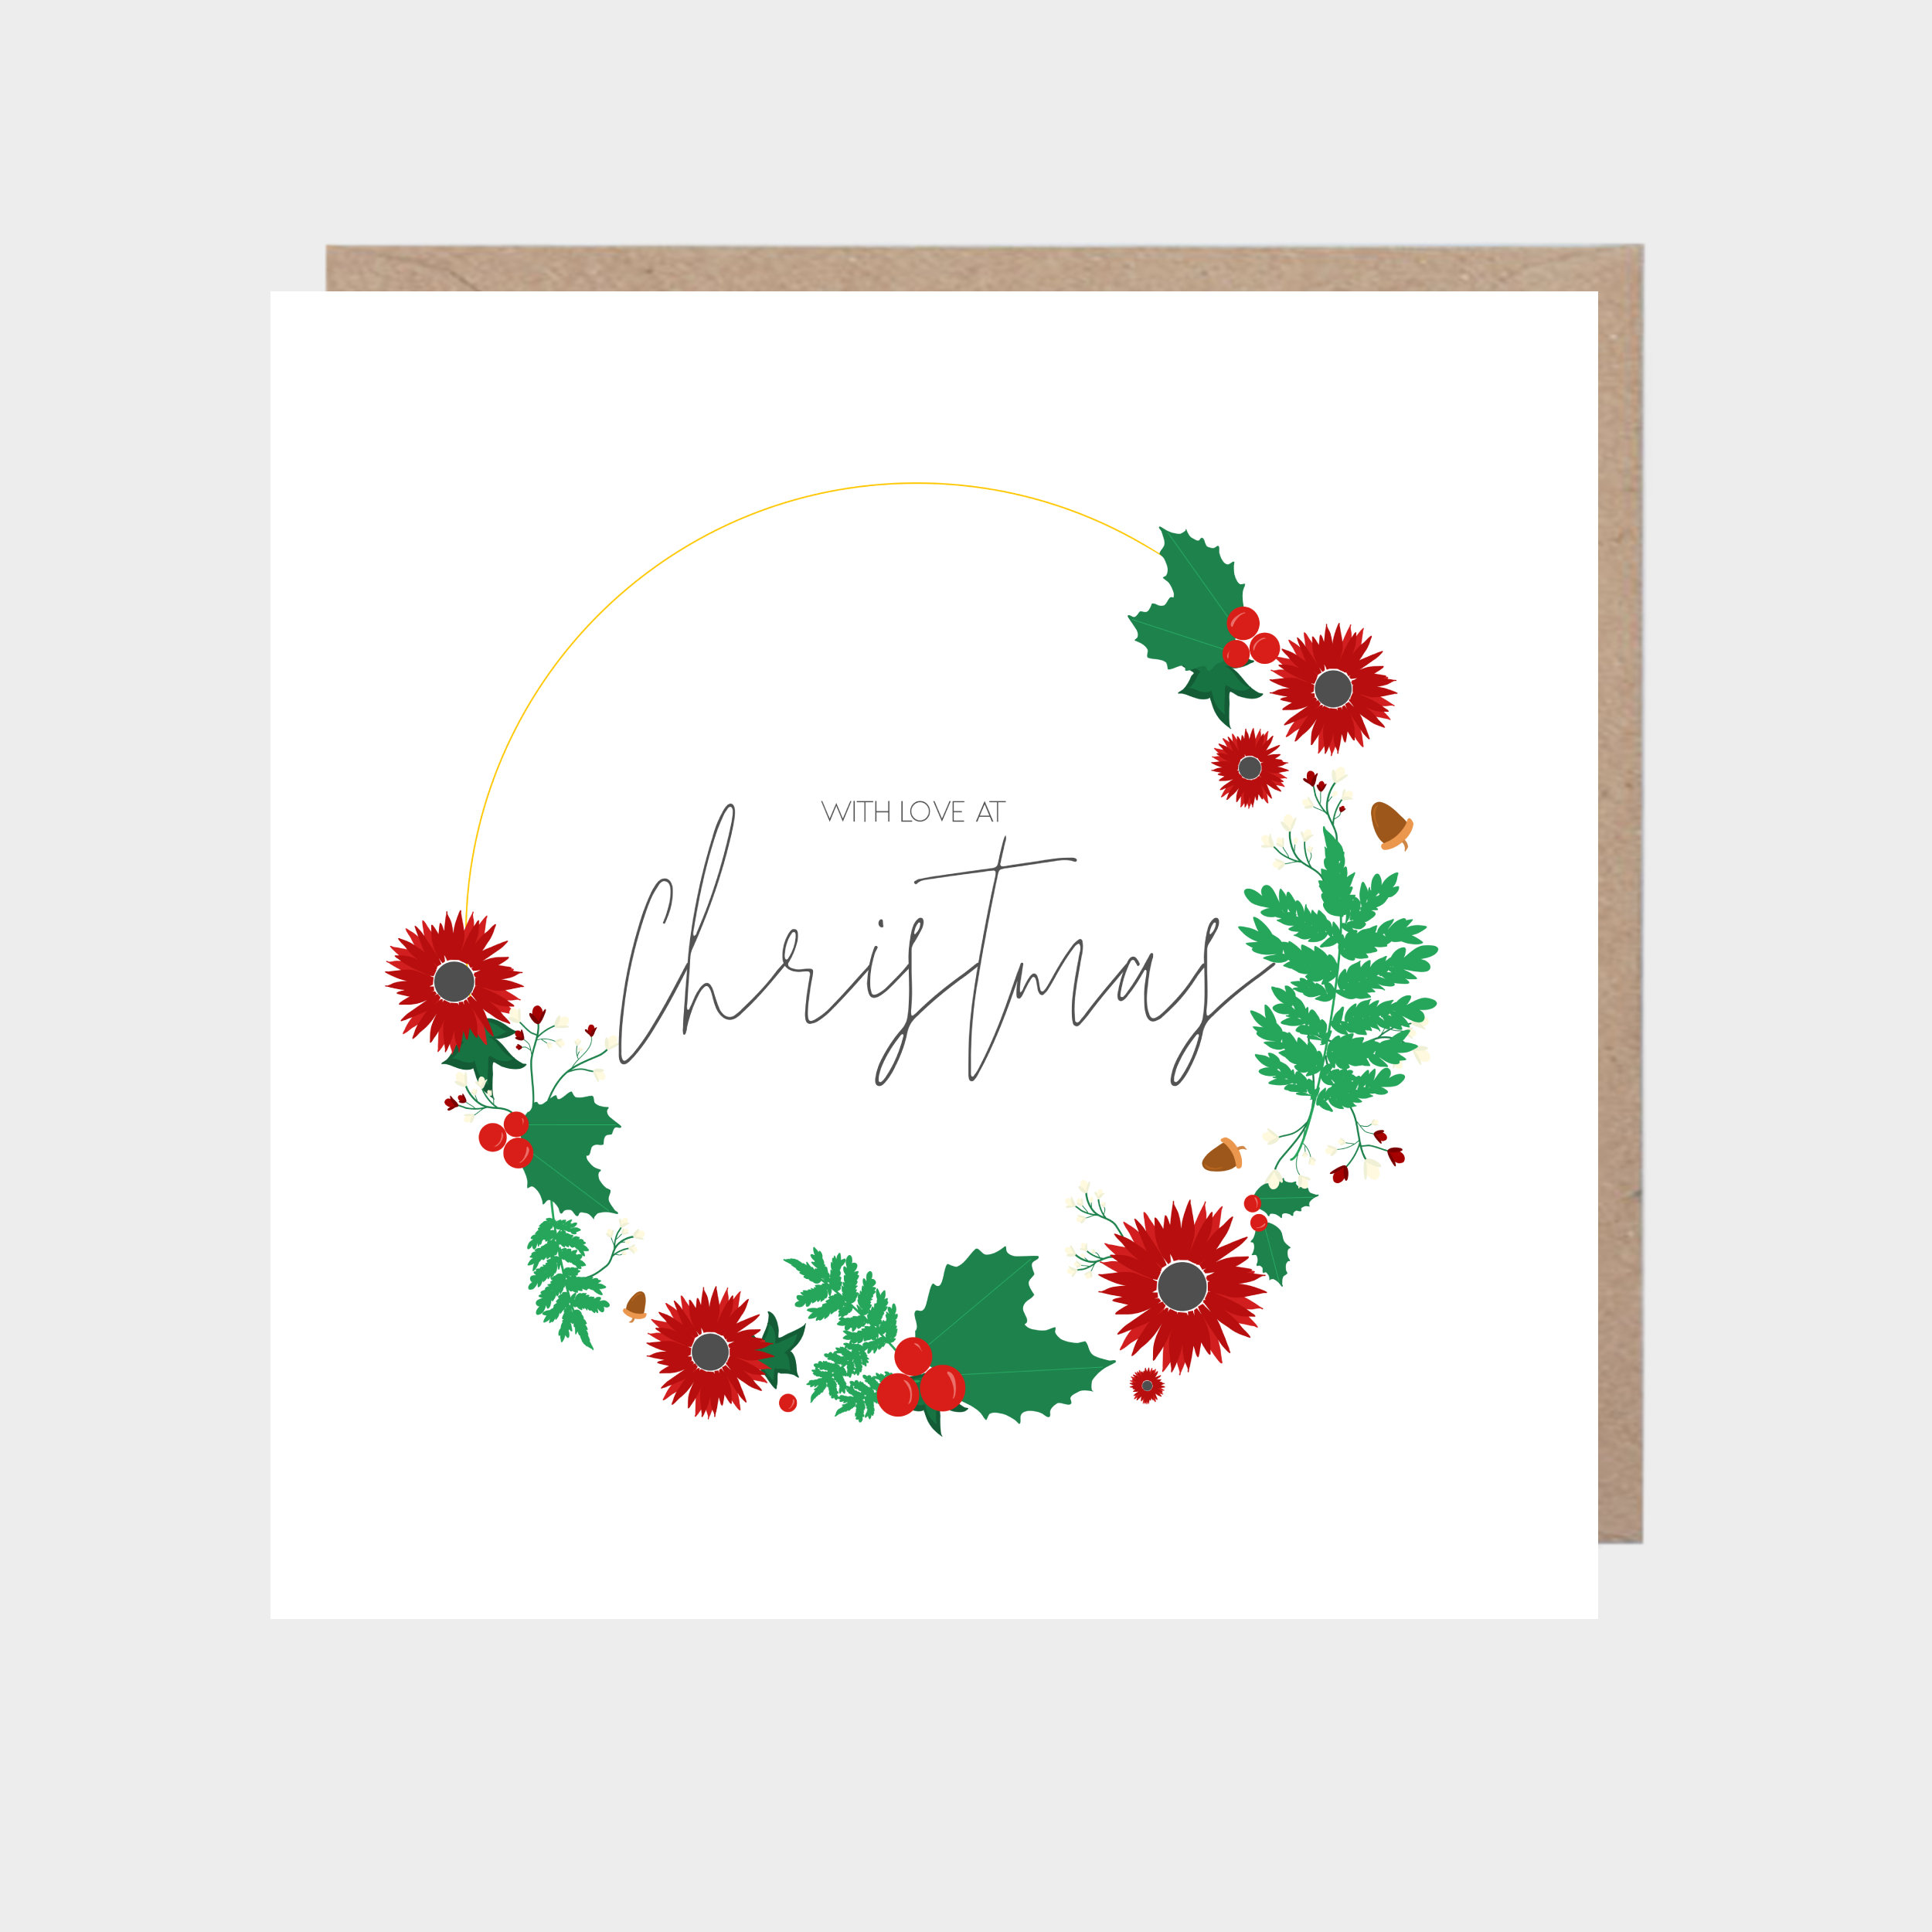 White illustrated Christmas wreath card, with a brown kraft envelope